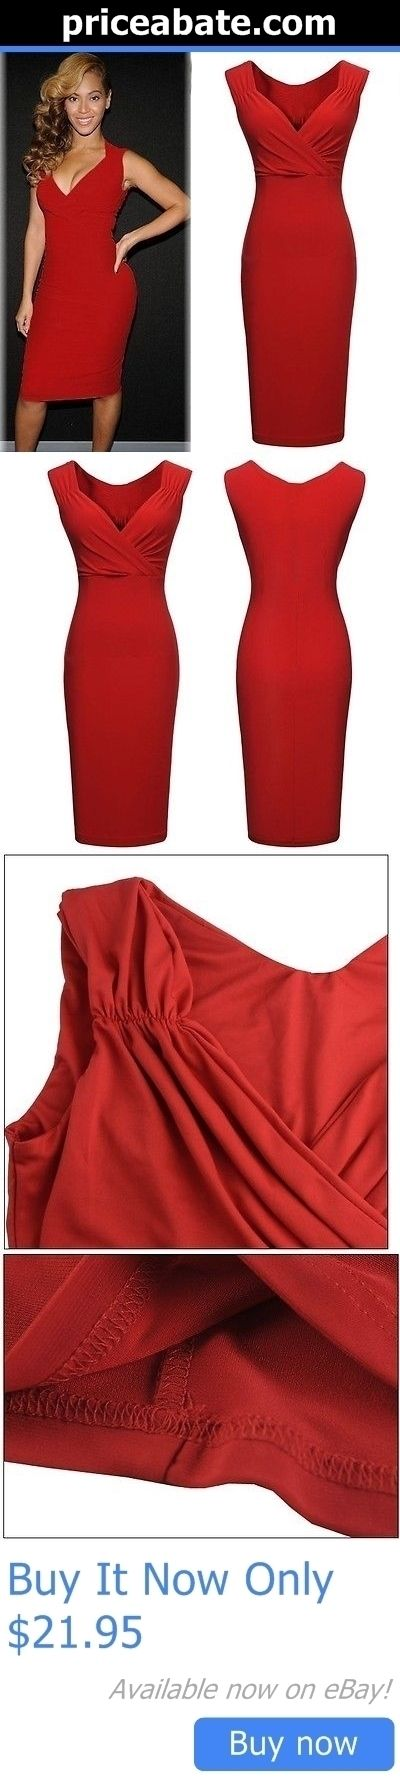 Beyonce Dresses: Beyonce Dress Bodycon Red Size 2 BUY IT NOW ONLY: $21.95 #priceabateBeyonceDresses OR #priceabate